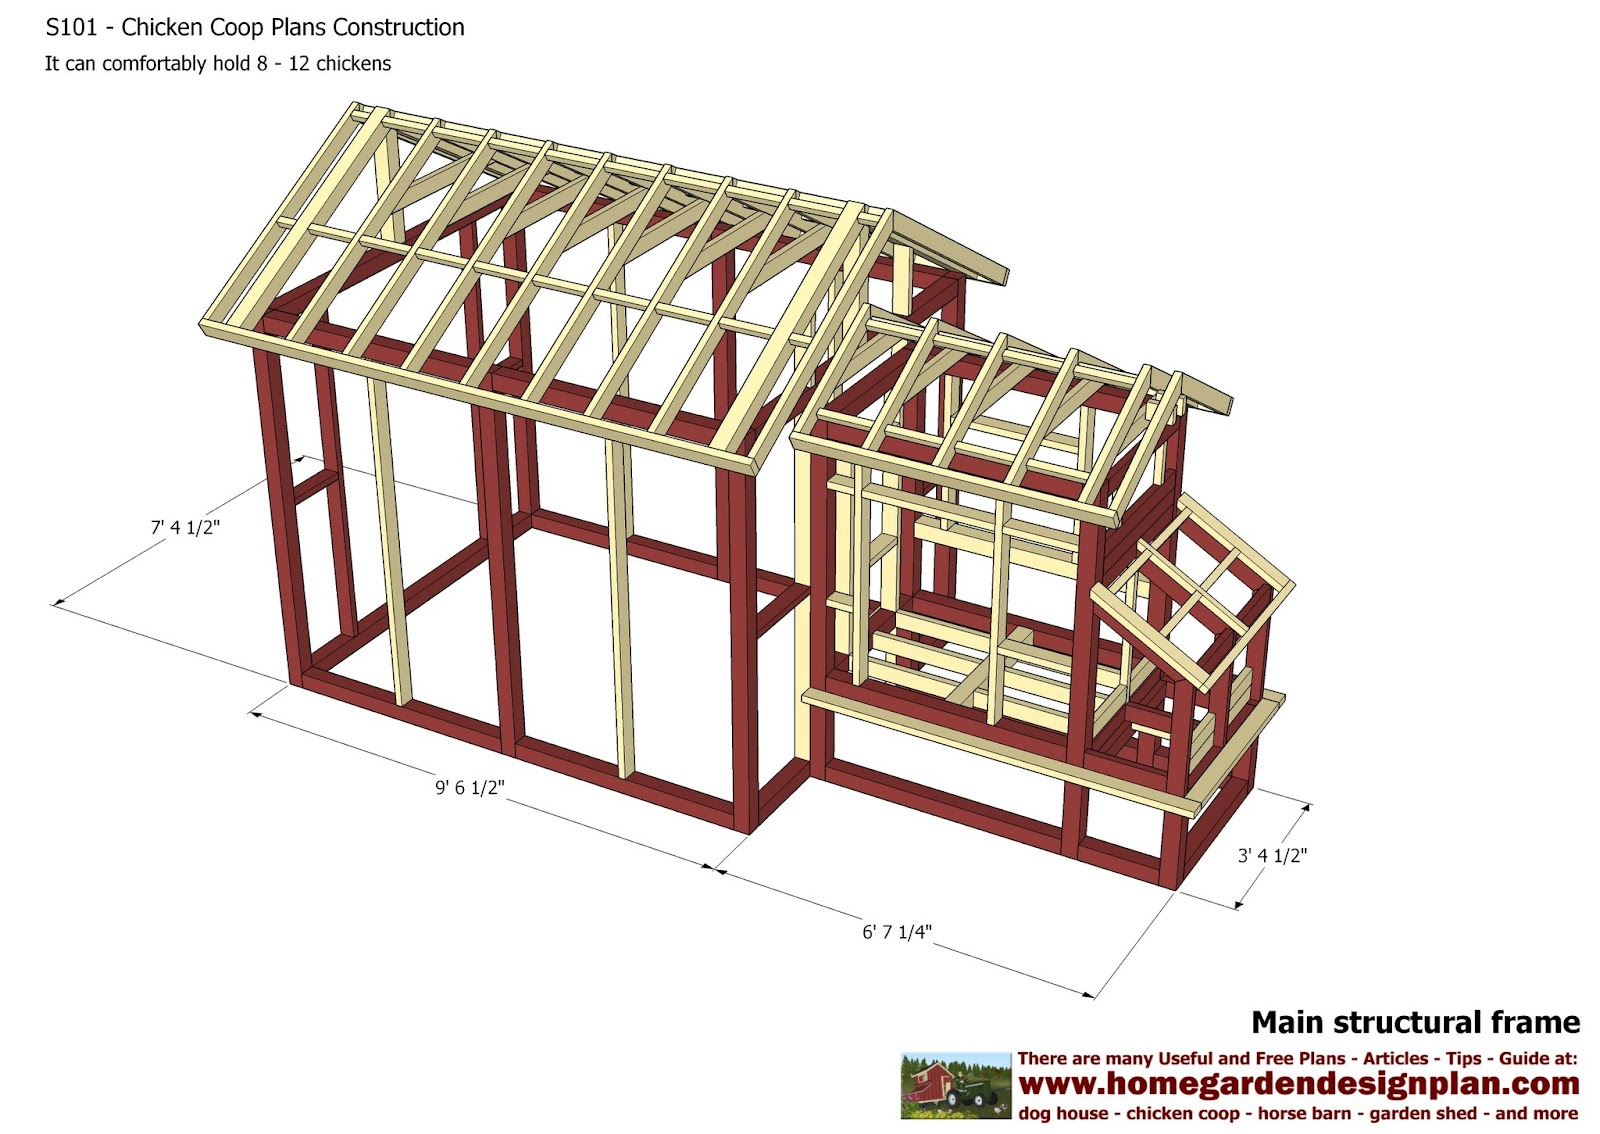 Home garden plans s101 chicken coop plans construction for House construction plan